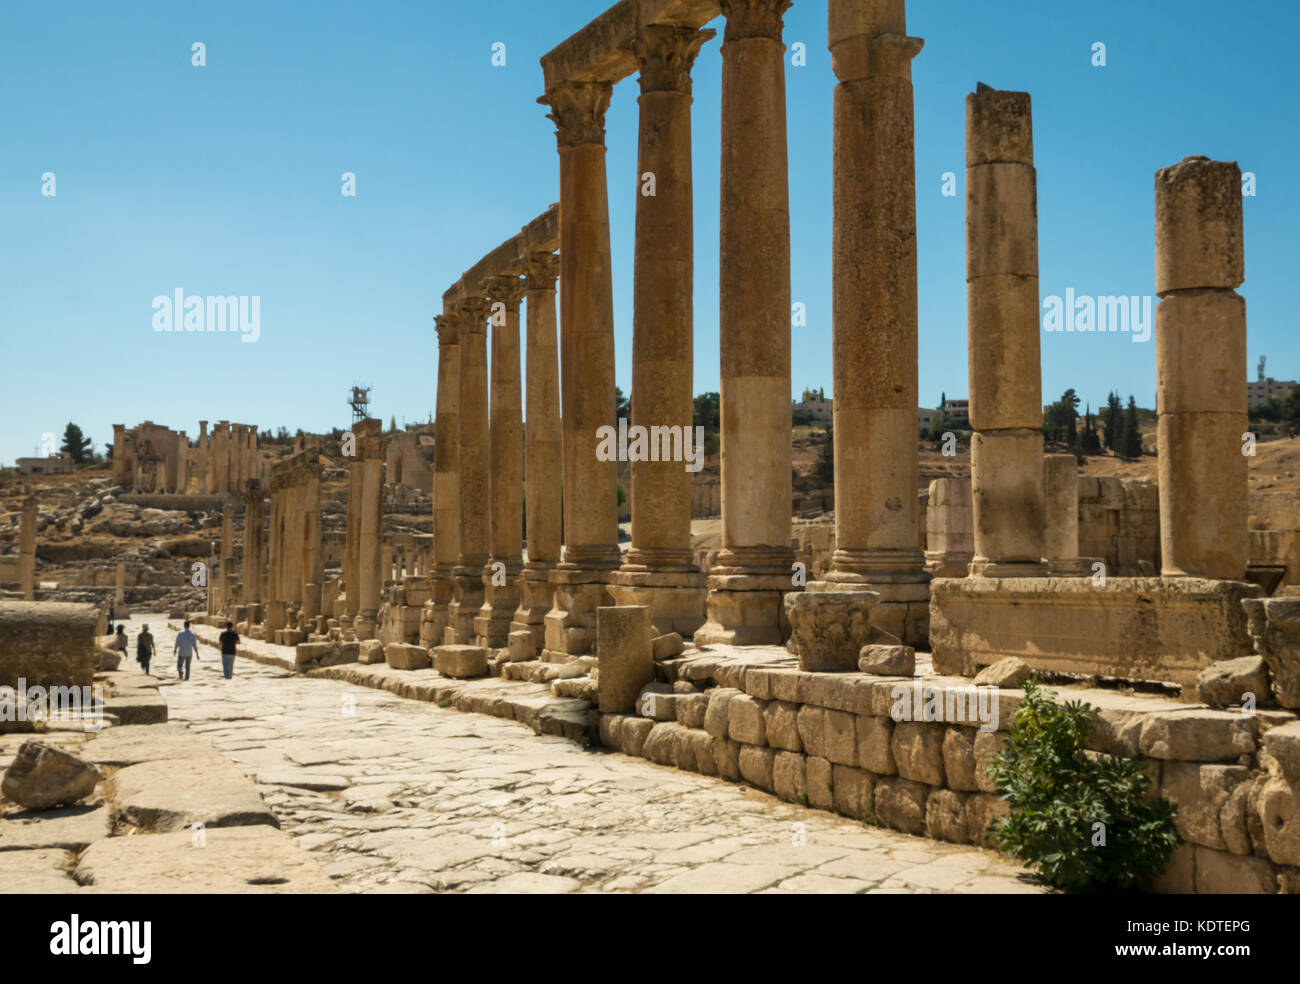 Tourists walking along the Cardo, Roman city of Jerash ancient Gerasa, archeological site and tourist attraction, - Stock Image